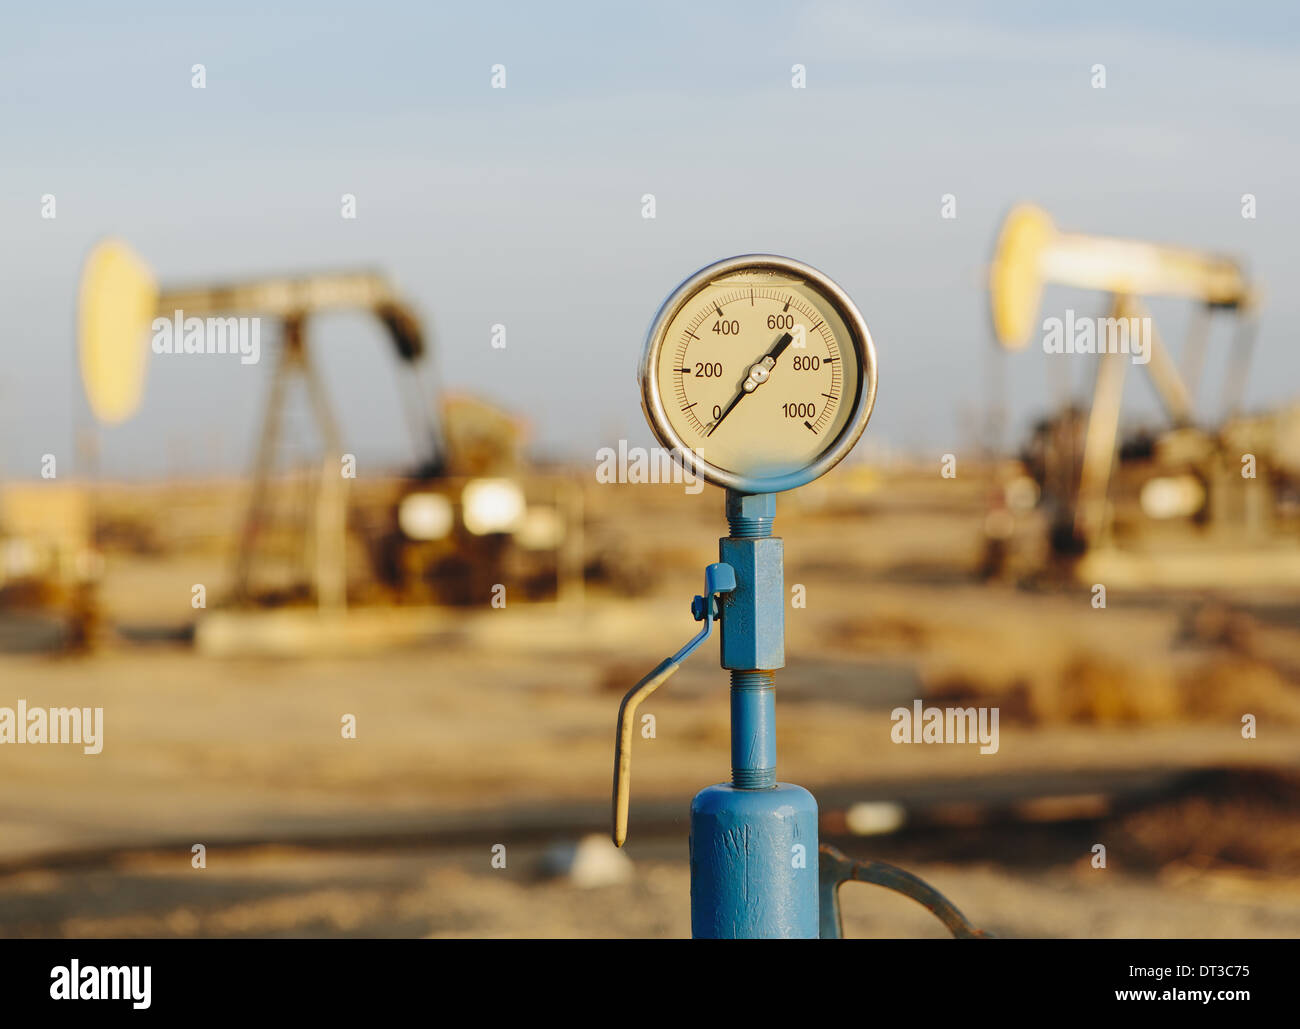 Air pressure gauge, oil rigs in background, Sunset-Midway oil fields, the largest in California. - Stock Image